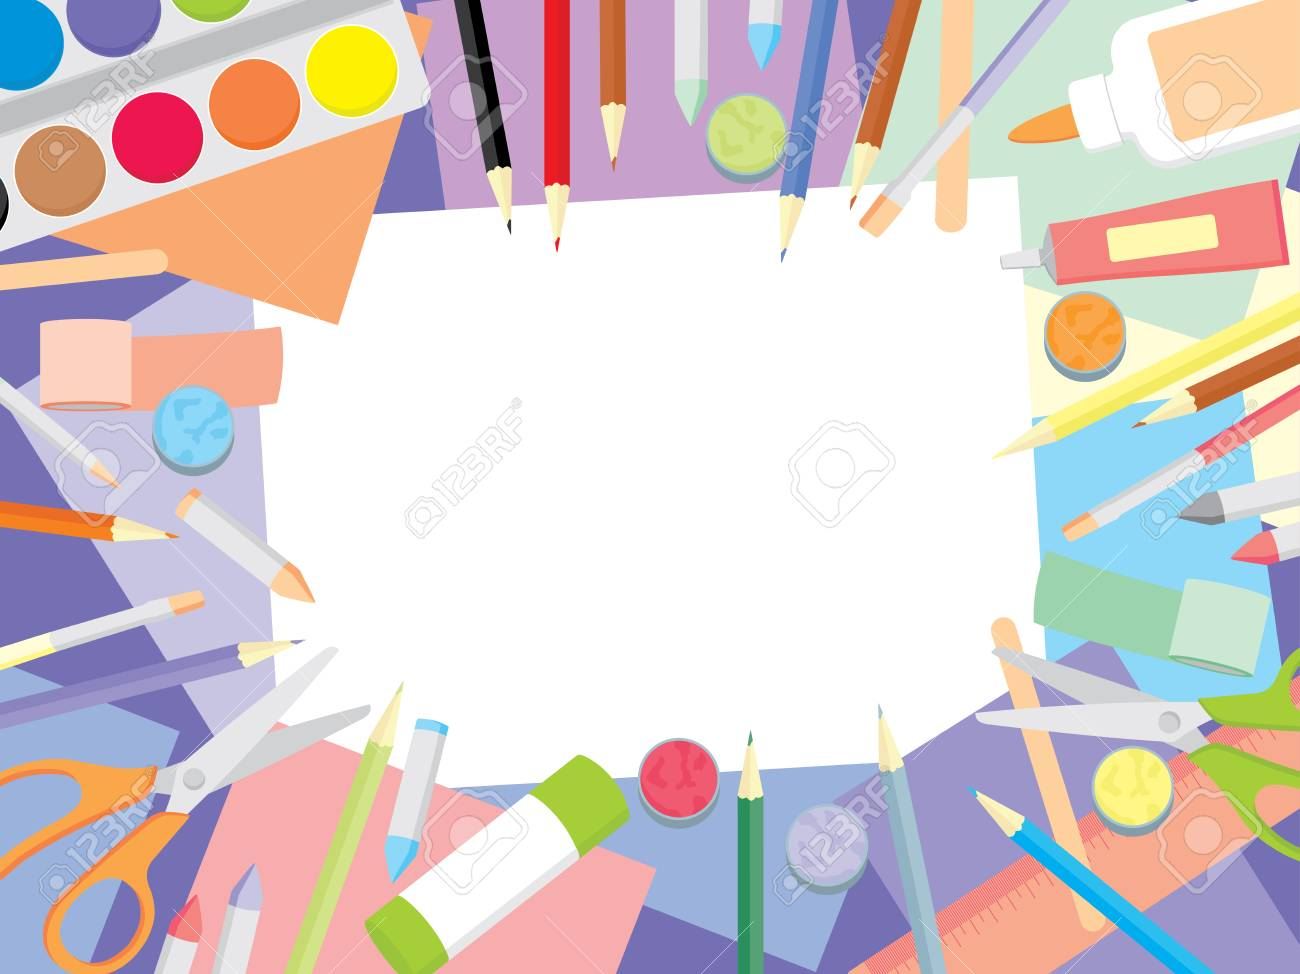 Kids craft supplies background - education and enjoyment concept